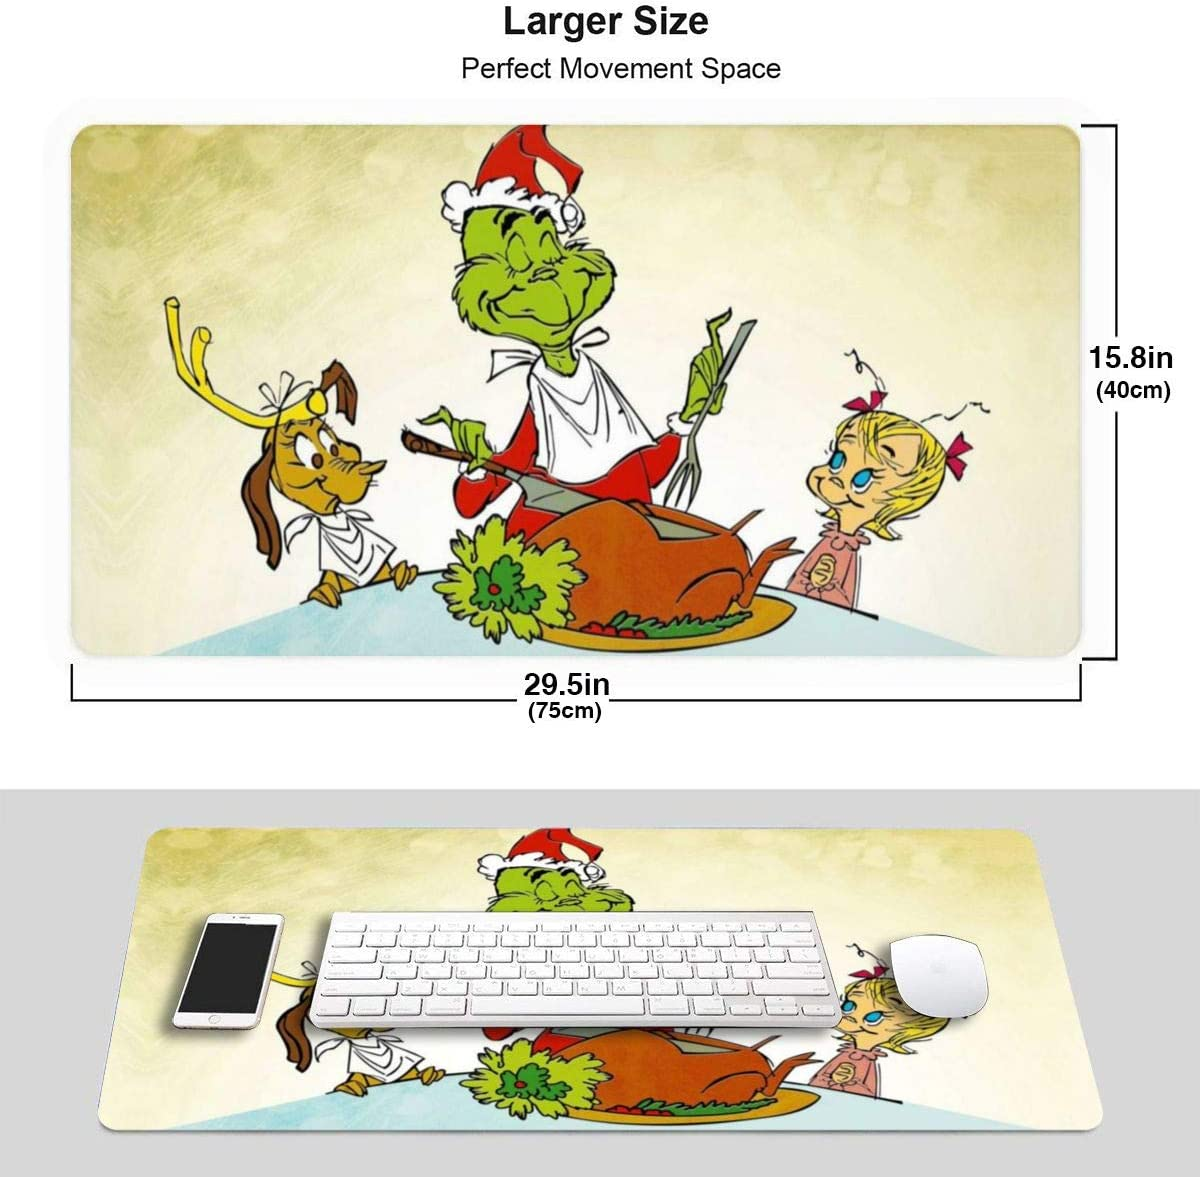 Dr Seuss How The Grinch Stole Christmas Happy Mouse Pad Rectangle Non-Slip Rubber Gaming//Working Geek Mousepad Comfortable Desk Mouse Pad 15.8x29.5 in